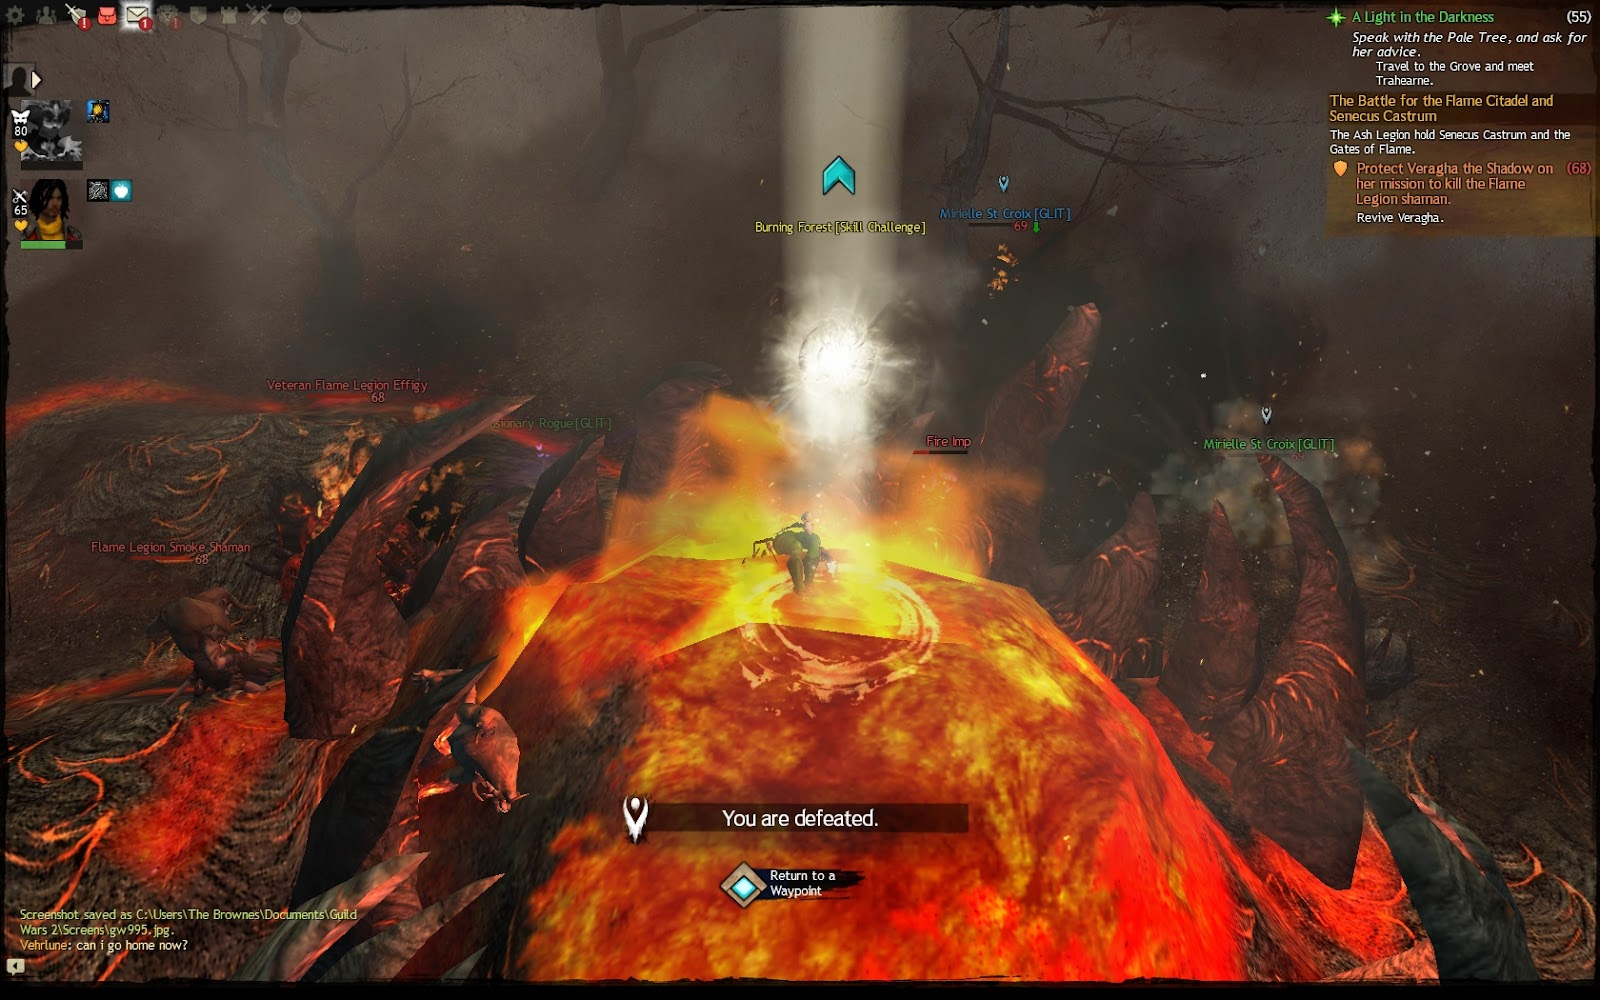 A screenshot of a character dead in what appears to be lava. Only their boots are visible. Guild Wars 2, ArenaNet, NCSOFT, 2012.